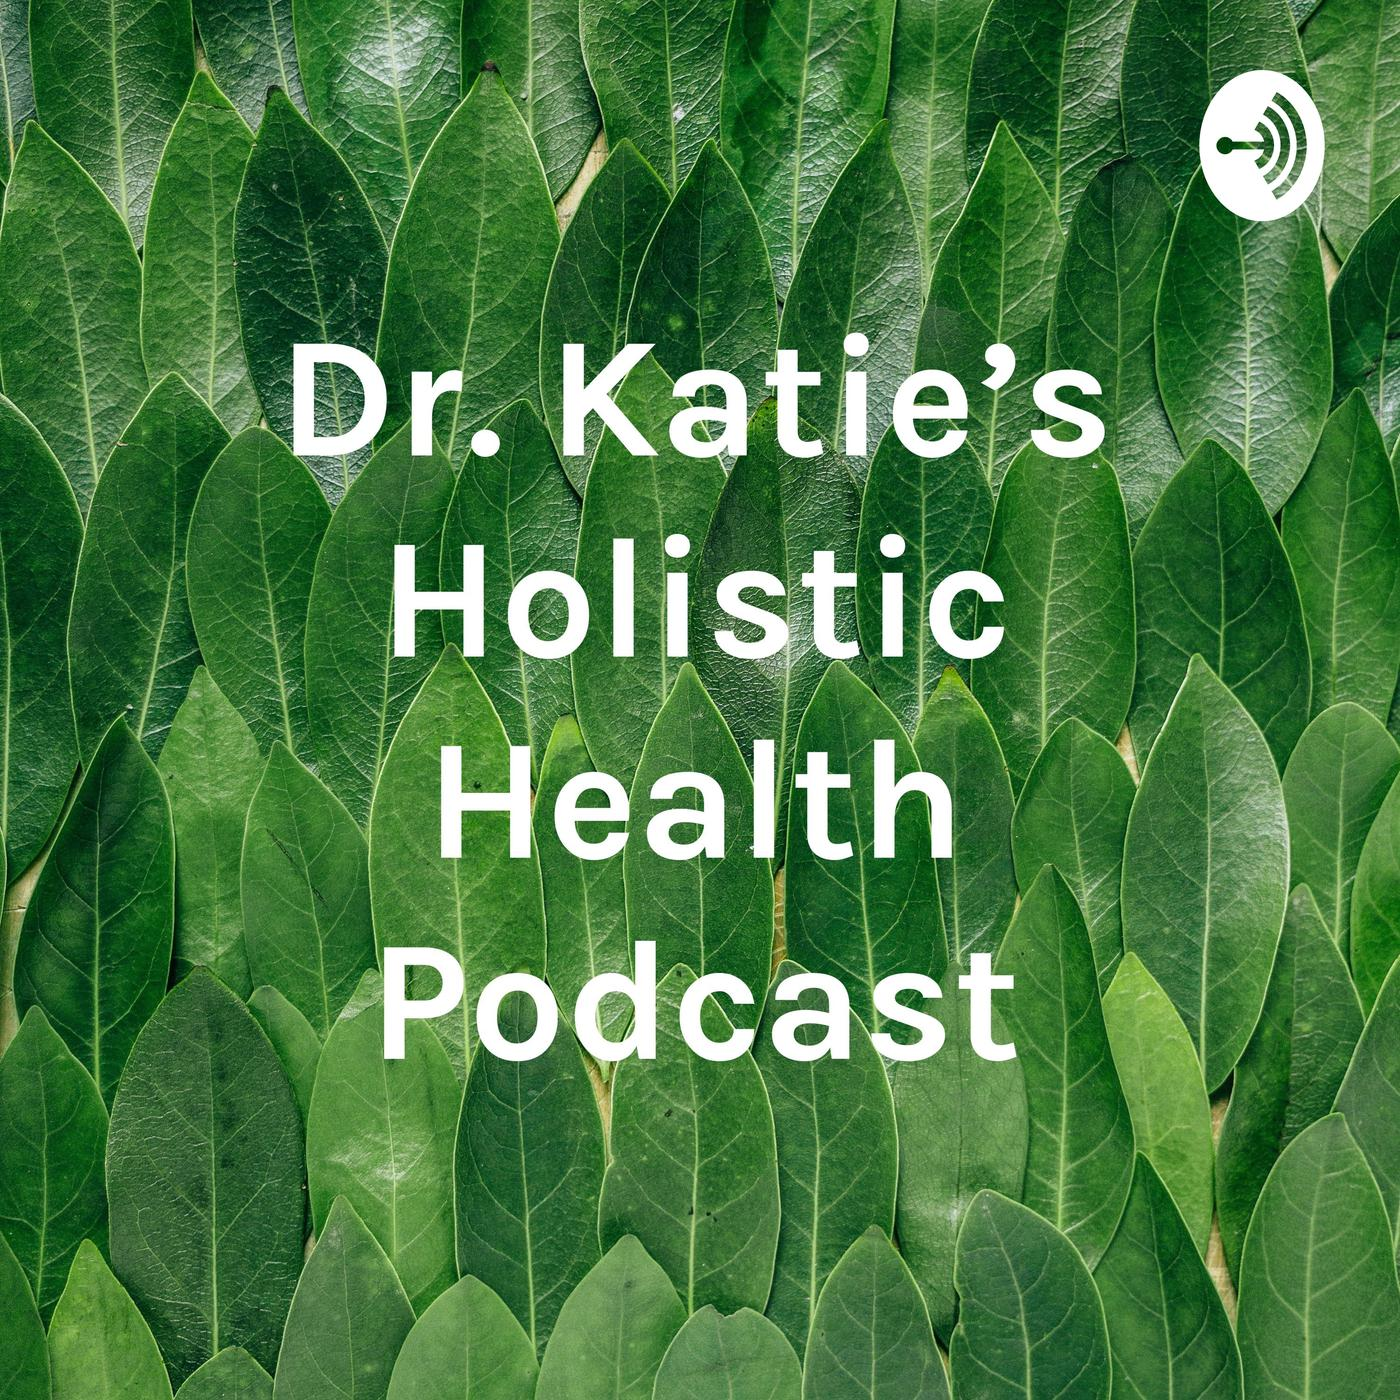 Preparations For Holistic Health